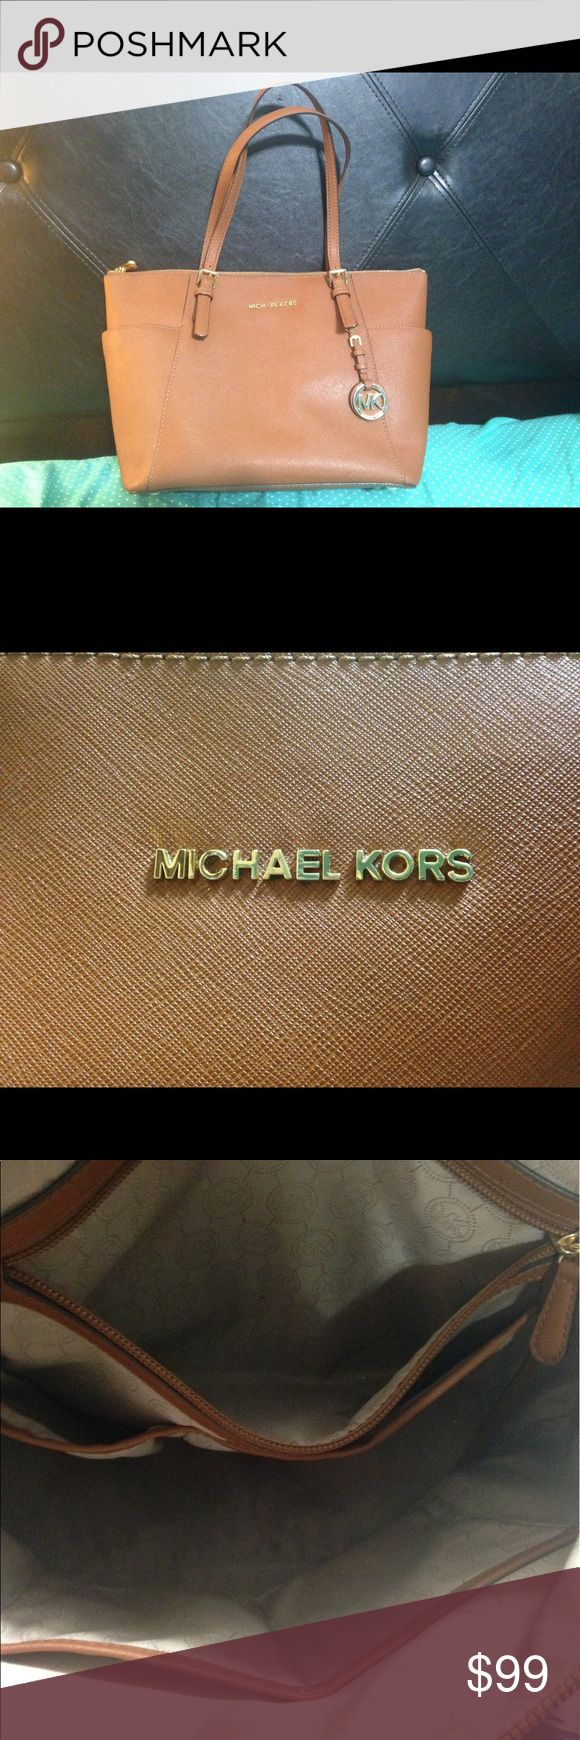 Michael Kors Jet Set Tote Michael Kors Jet Set Tote in great condition. Luggage (tan) color. Please don't hesitate to contact me if you have any questions. KORS Michael Kors Bags Totes